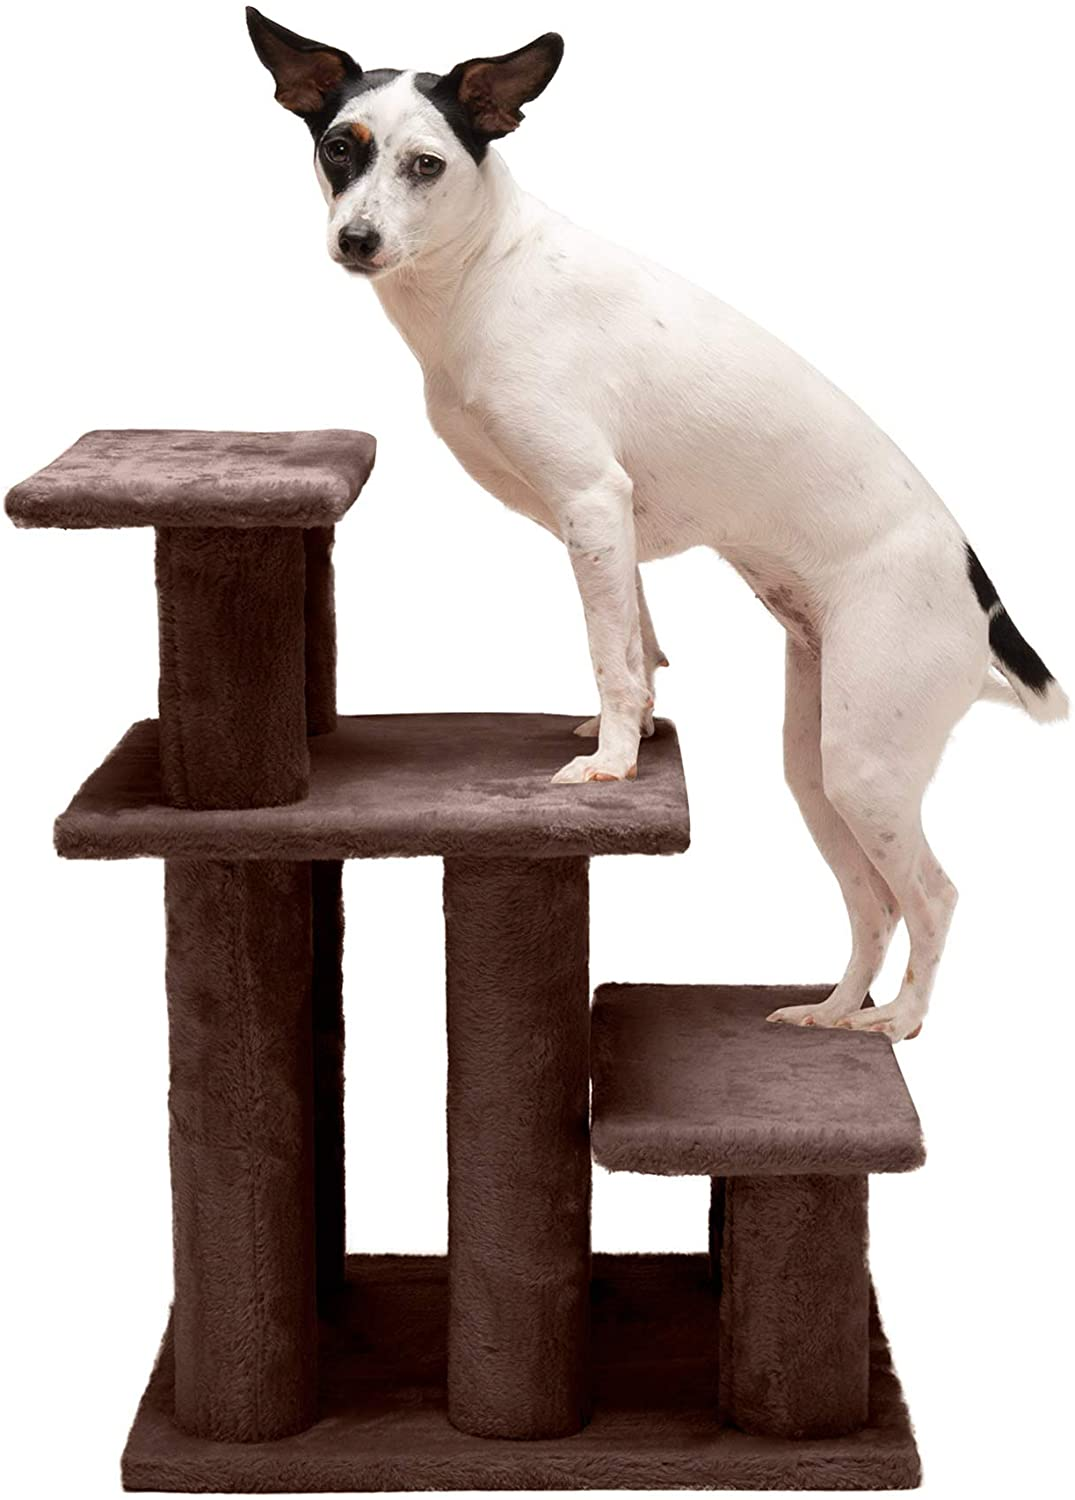 Furhaven Pet - Steady Paws Furniture Assist Multi-Step Dog Stairs for High Beds & Couch for Dogs & Cats - Multiple Heights & Colors